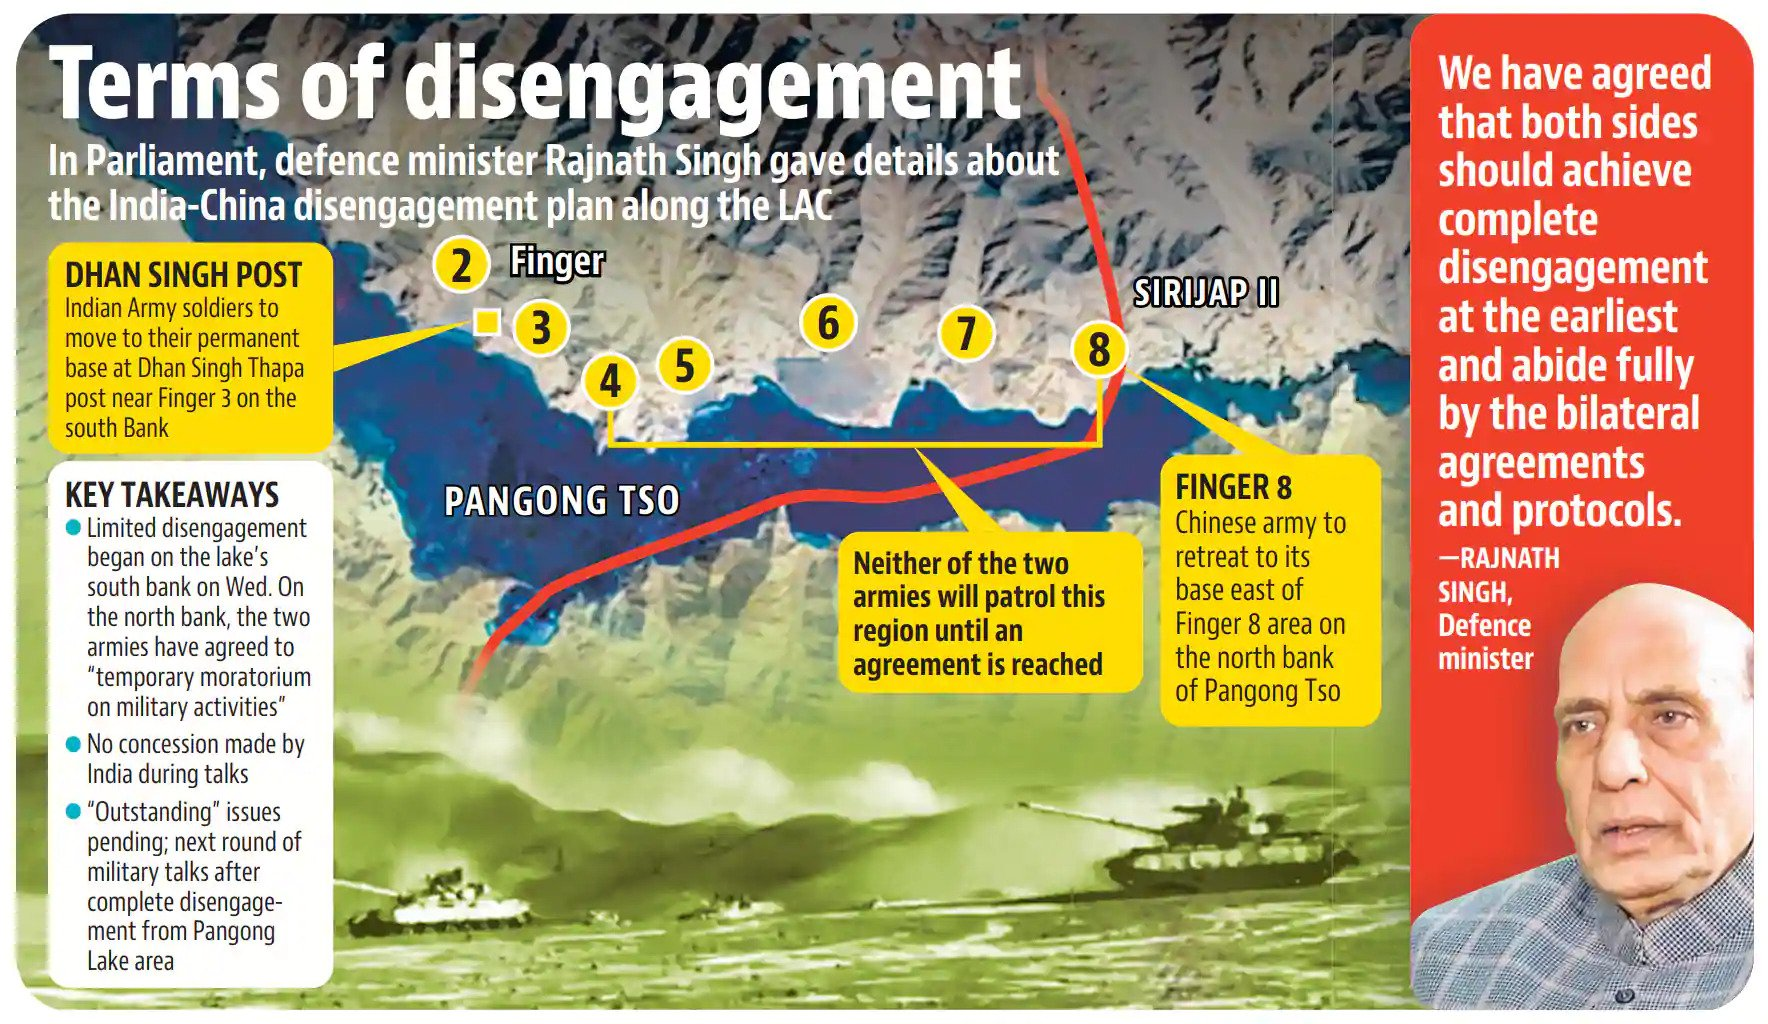 The outstanding issues related to deployment and patrolling at the three friction points will be taken up within 48 hours of pullback of troops deployed on strategic heights on the north and south banks of Pangong Tso, the ministry said in a statement.(HT Illustration)